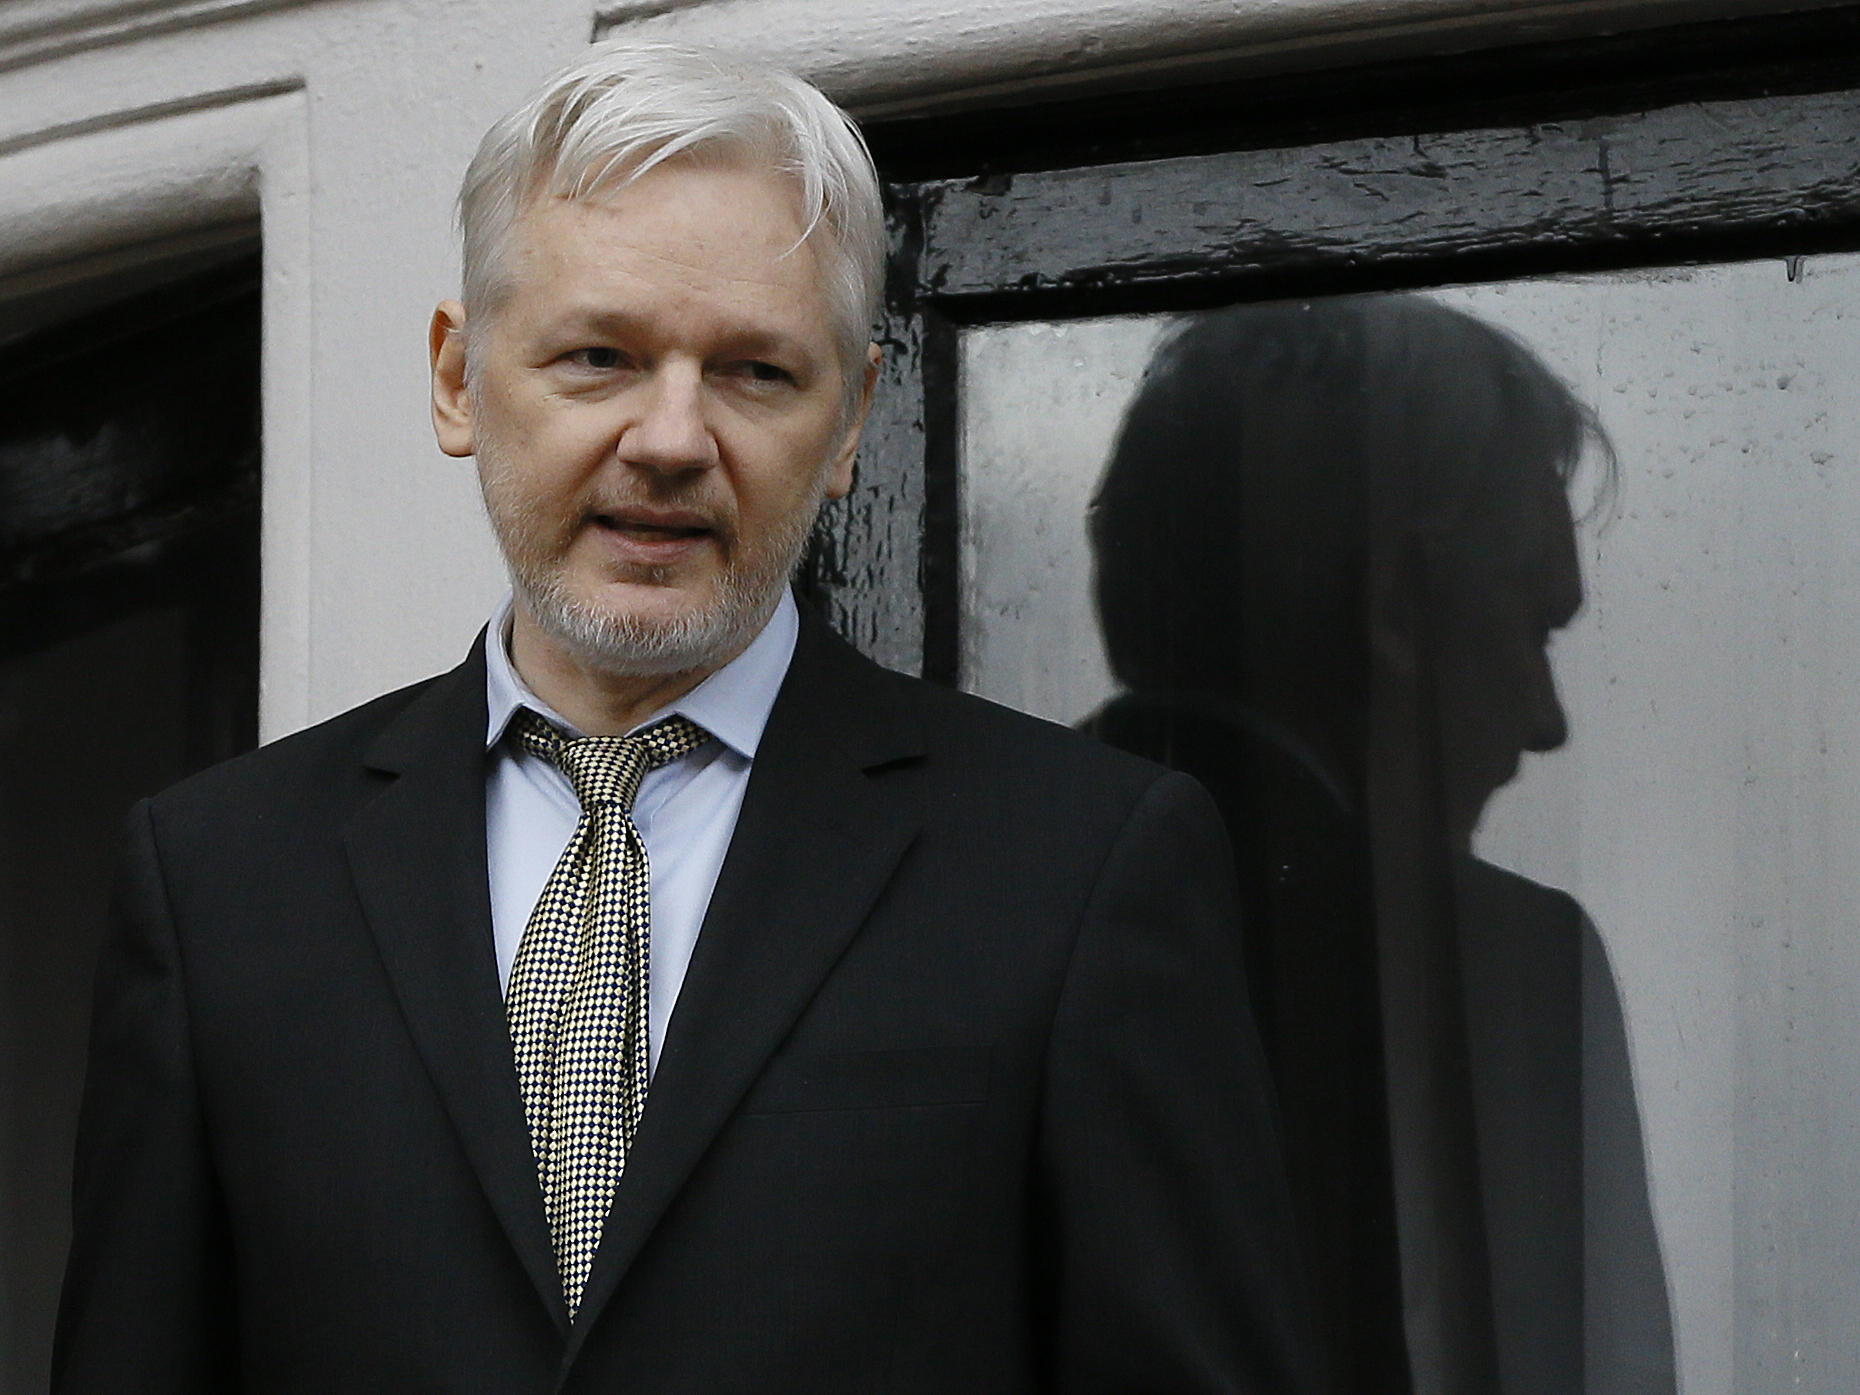 ethical view on wikileaks View all space exploration wikileaks: the ethics of revealing secrets thus some of what wikileaks does is ethical, and some is not.